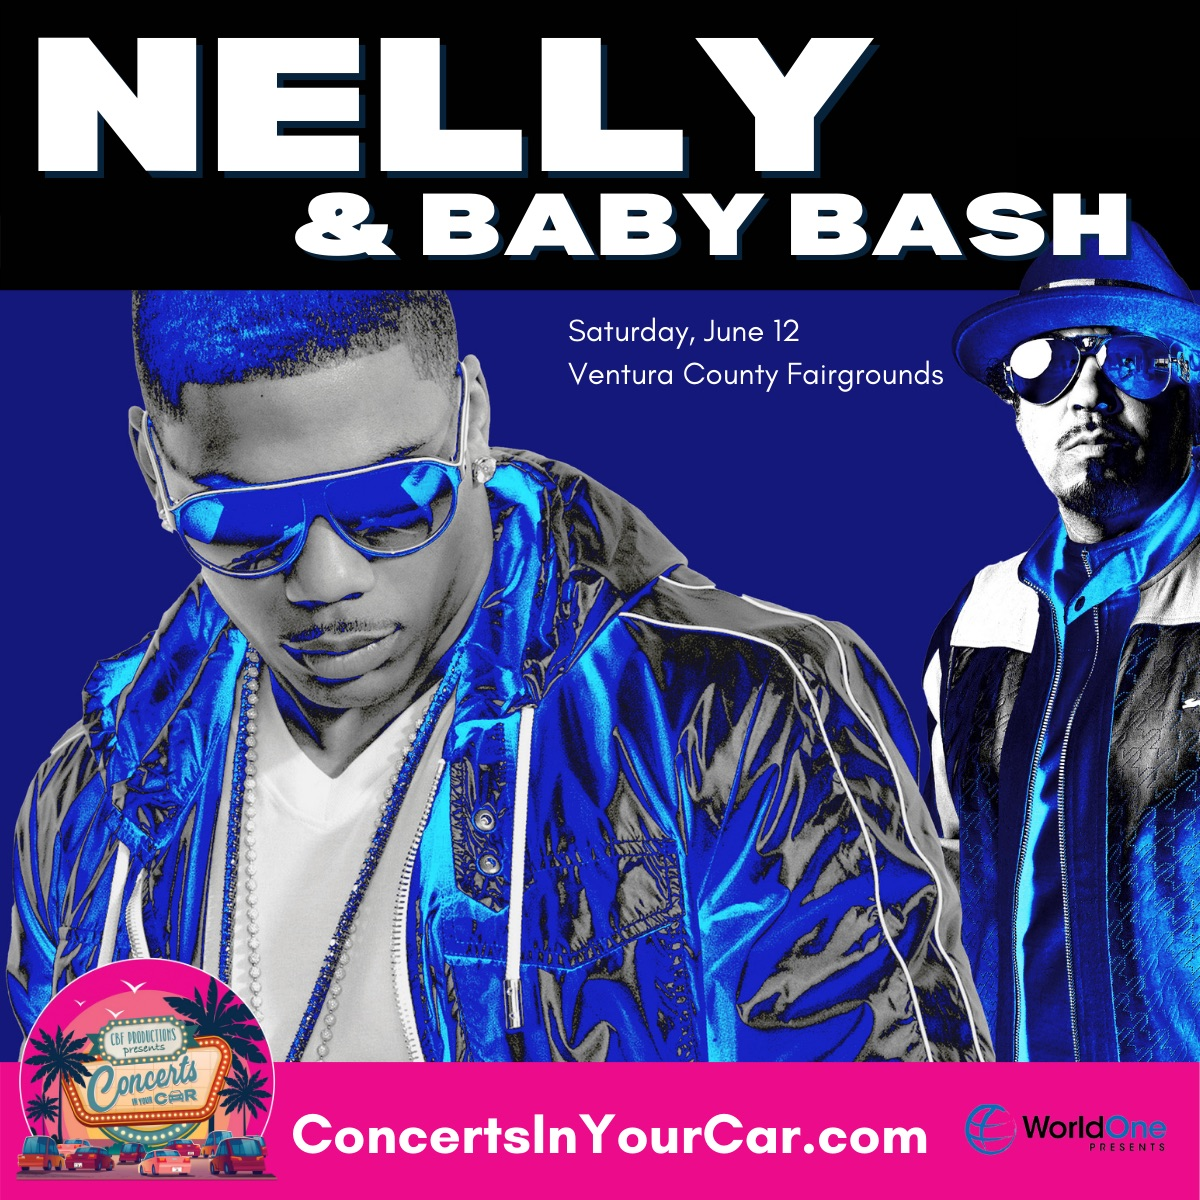 Nelly & Baby Bash